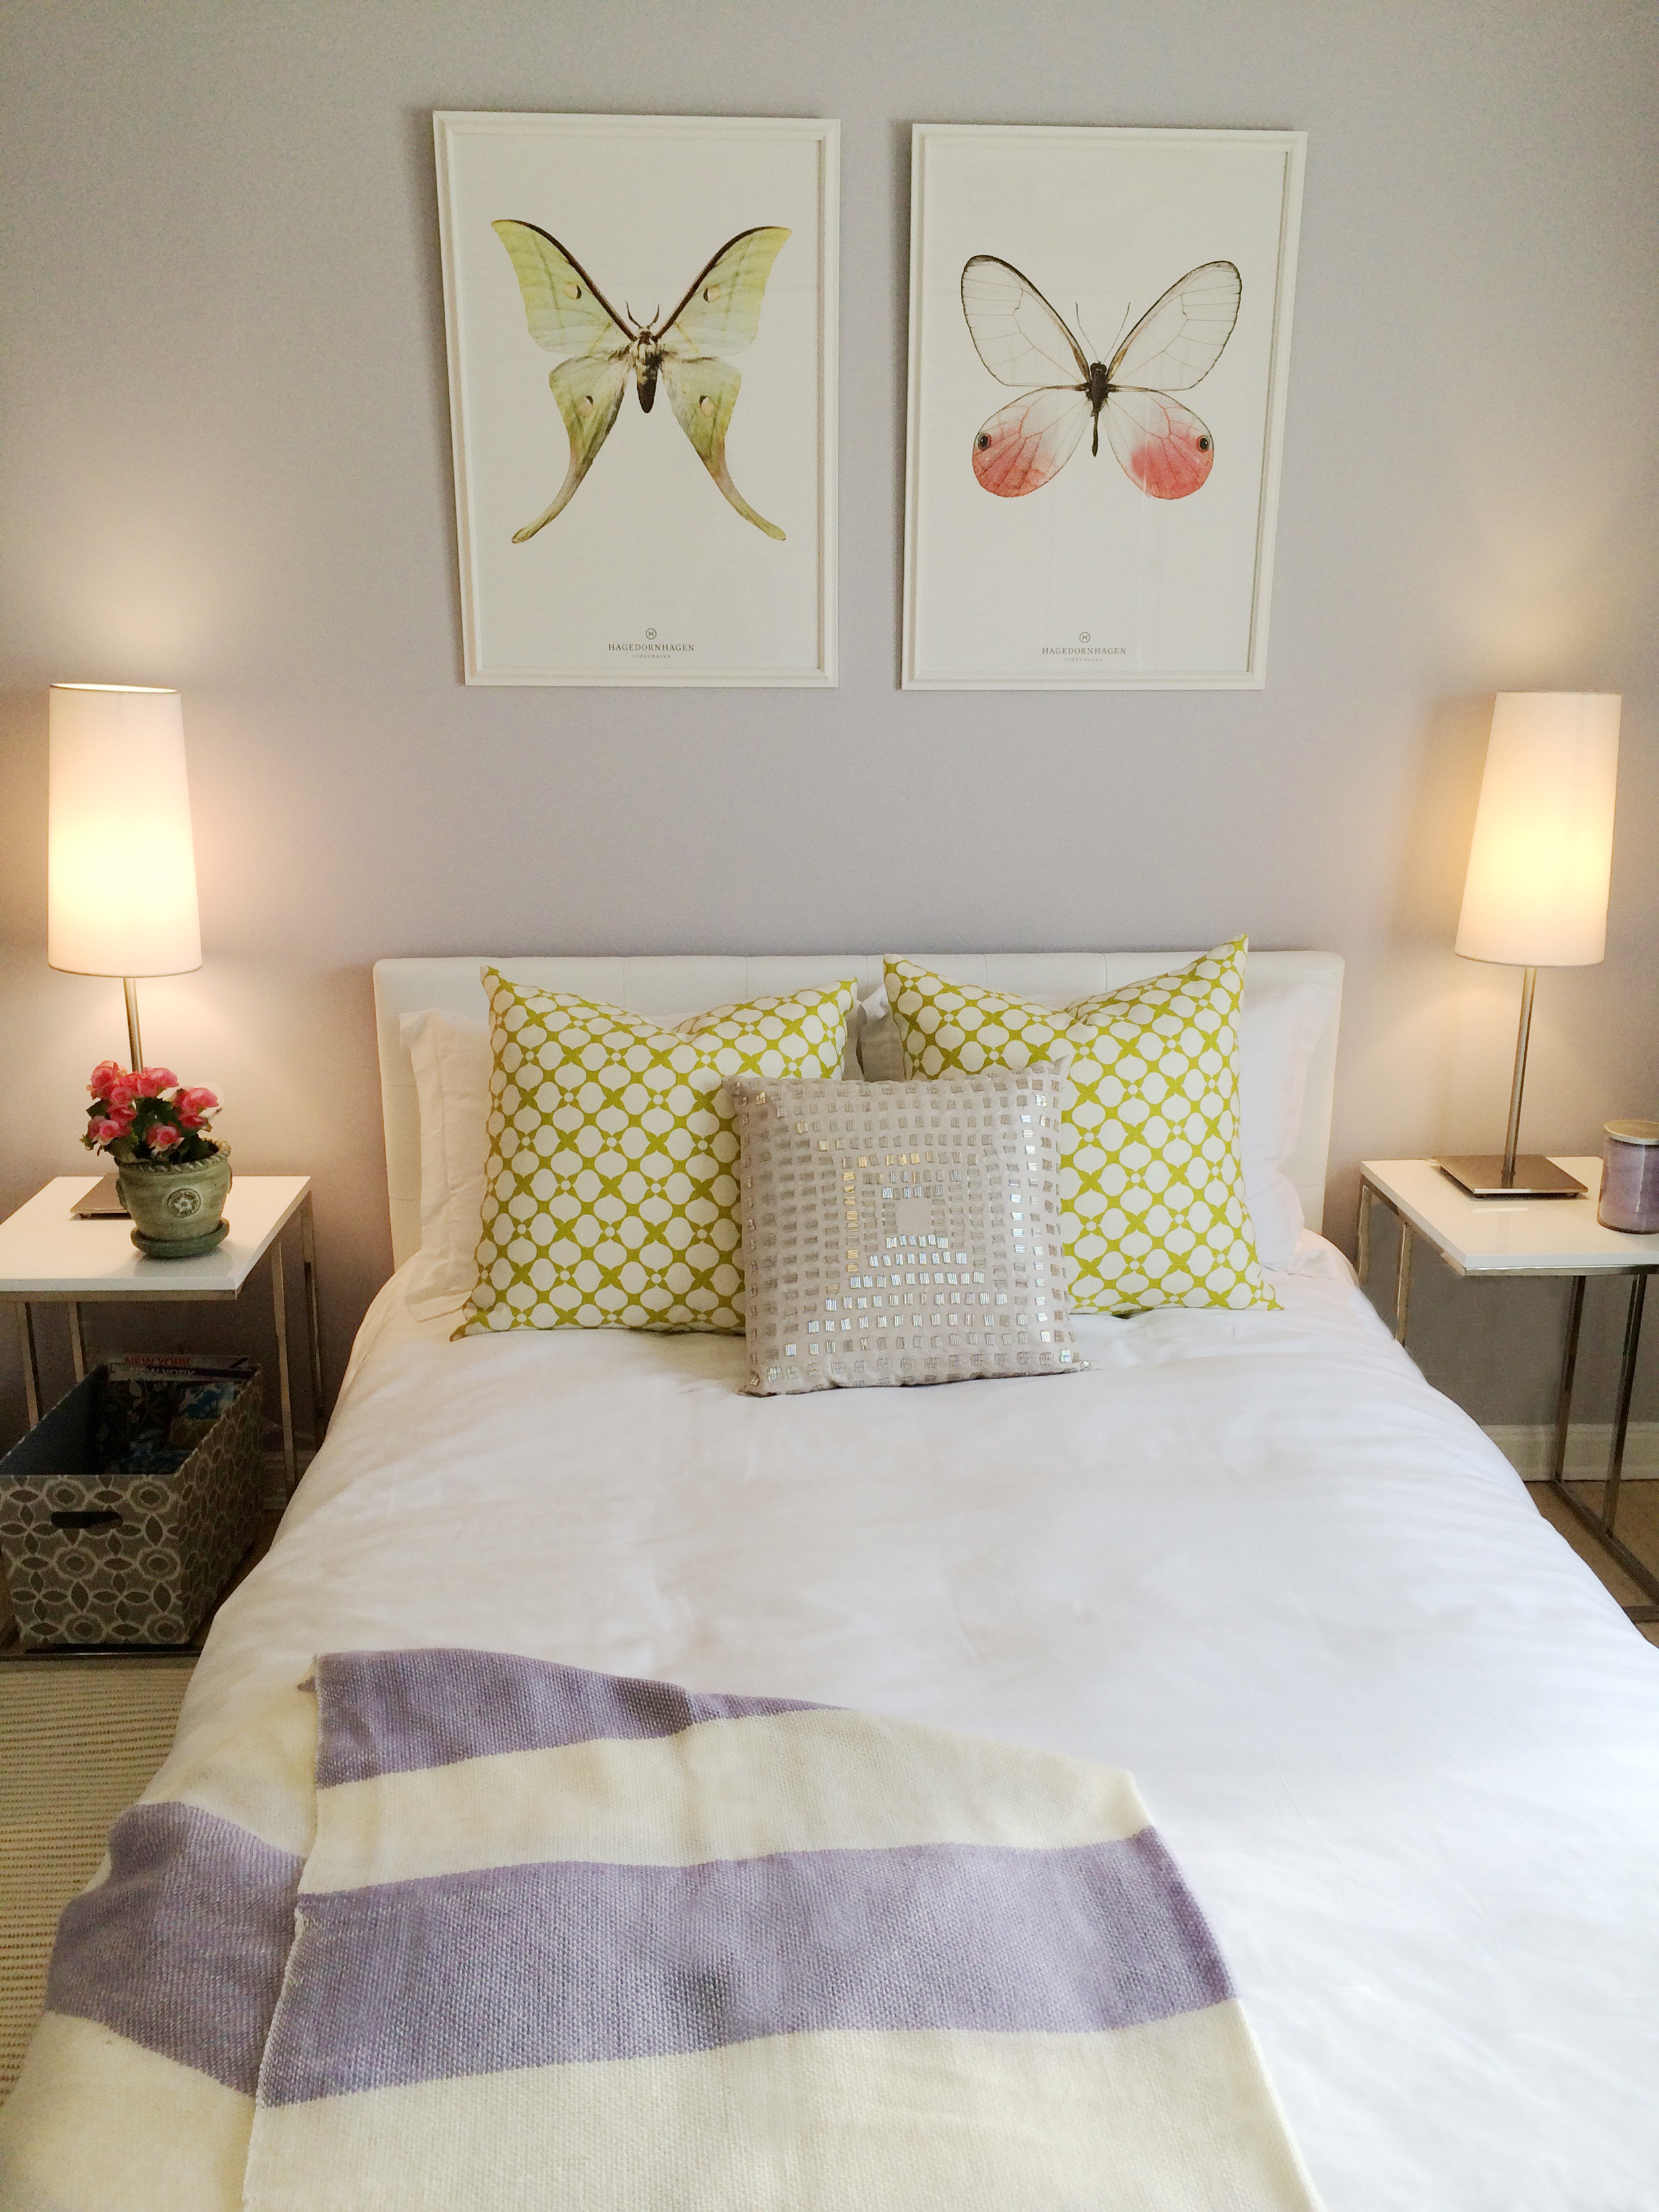 Kim Annick Mitchell_Production Designer_HGTV_Buying and Selling with The Property Brothers_Season 3_Episode 316_Girl Bedroom_Kontrast Butterfly Art.jpg